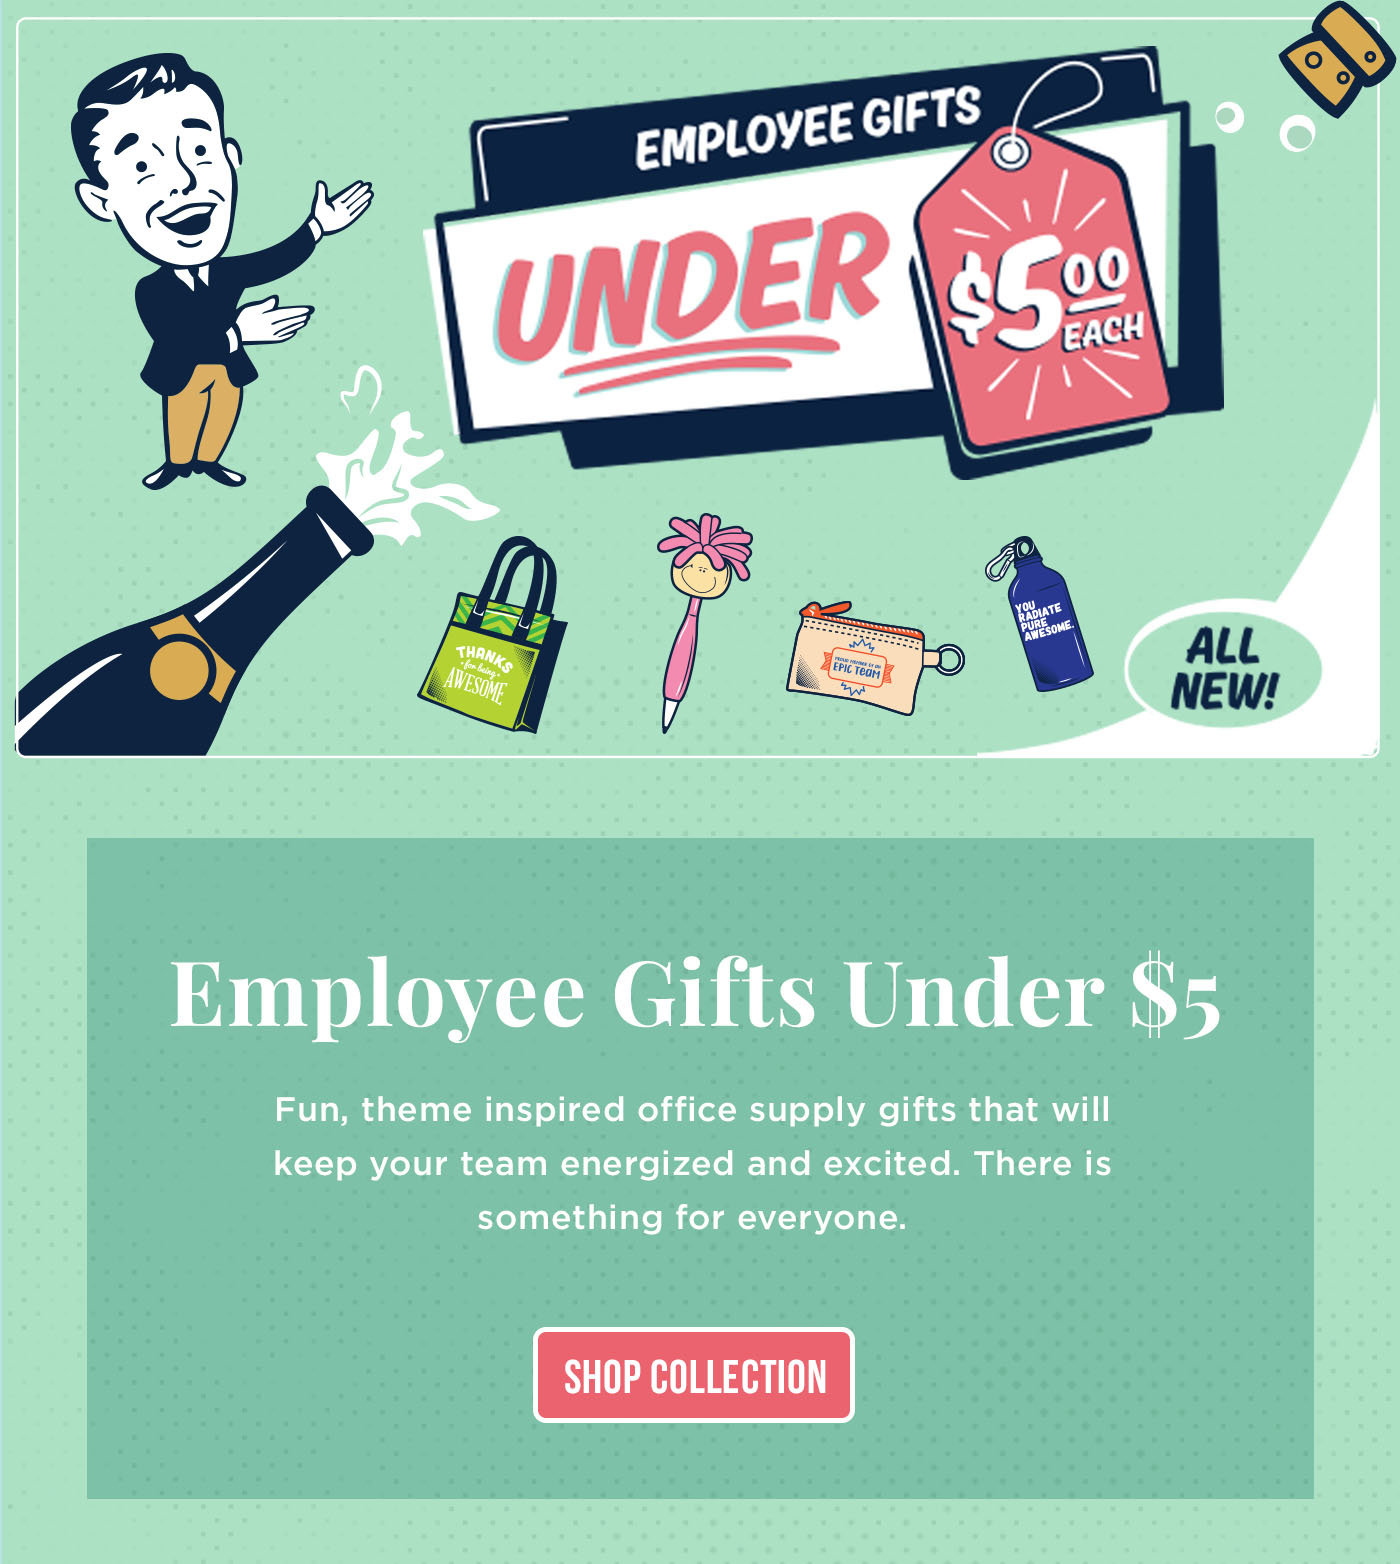 Employee Gifts Under $5